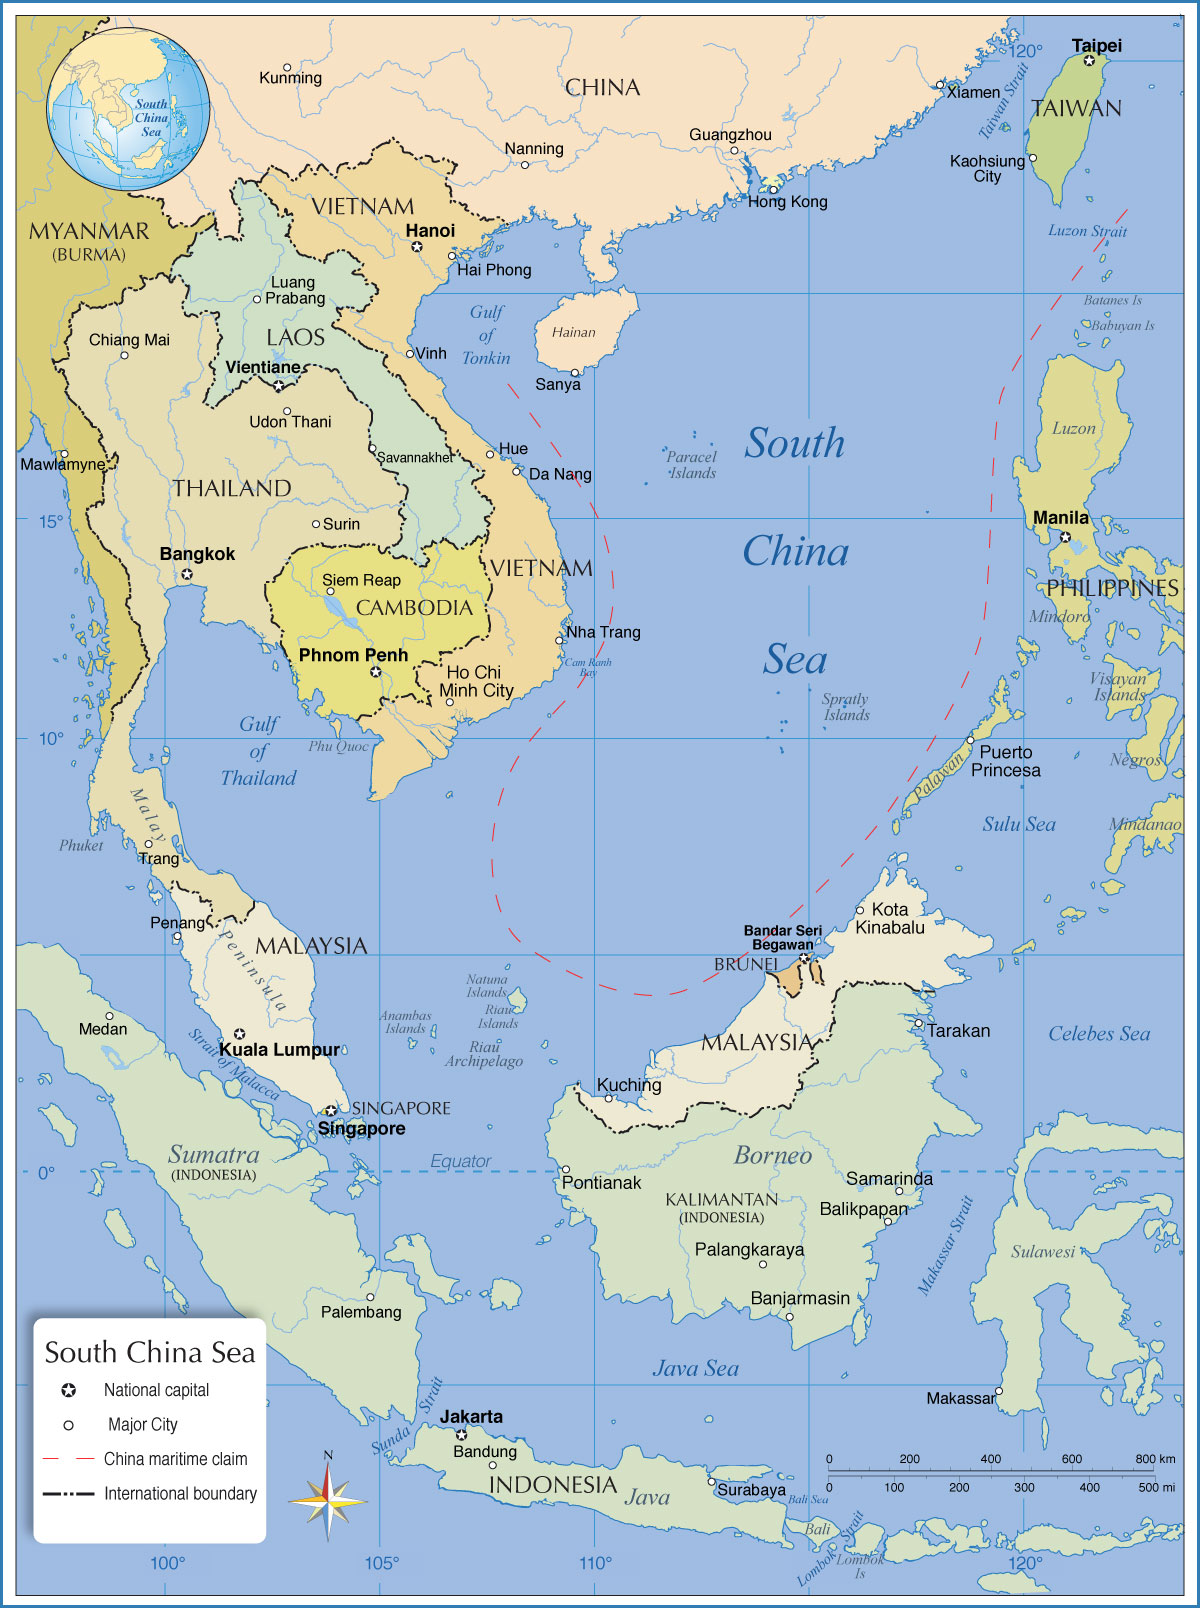 South China Sea Map From Nationsonline 1